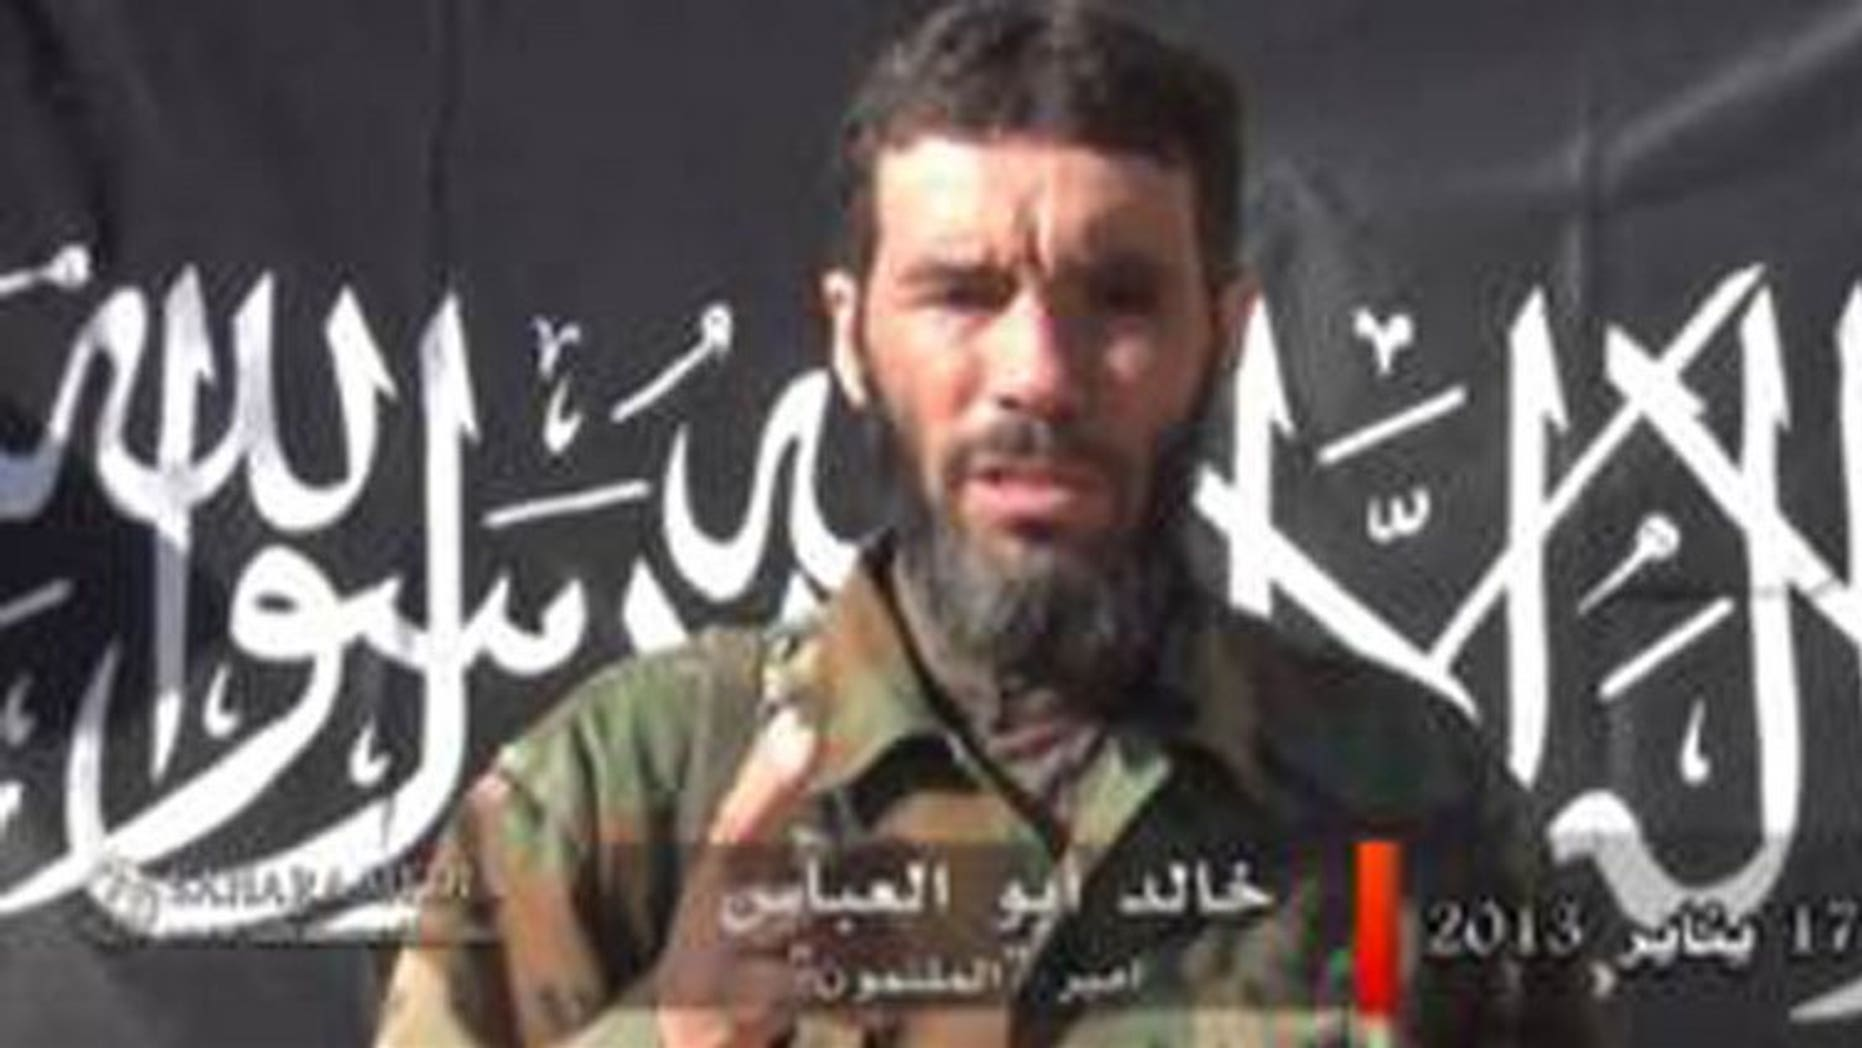 An image by Sahara Media released on January 20, 2013, shows Algerian jihadi mastermind Mokhtar Belmokhtar giving a statment. An Al Qaeda splinter group founded by Belmokhtar on Monday claimed that it was behind a deadly prison break in Niger last month, a statement published by online news agency ANI said.